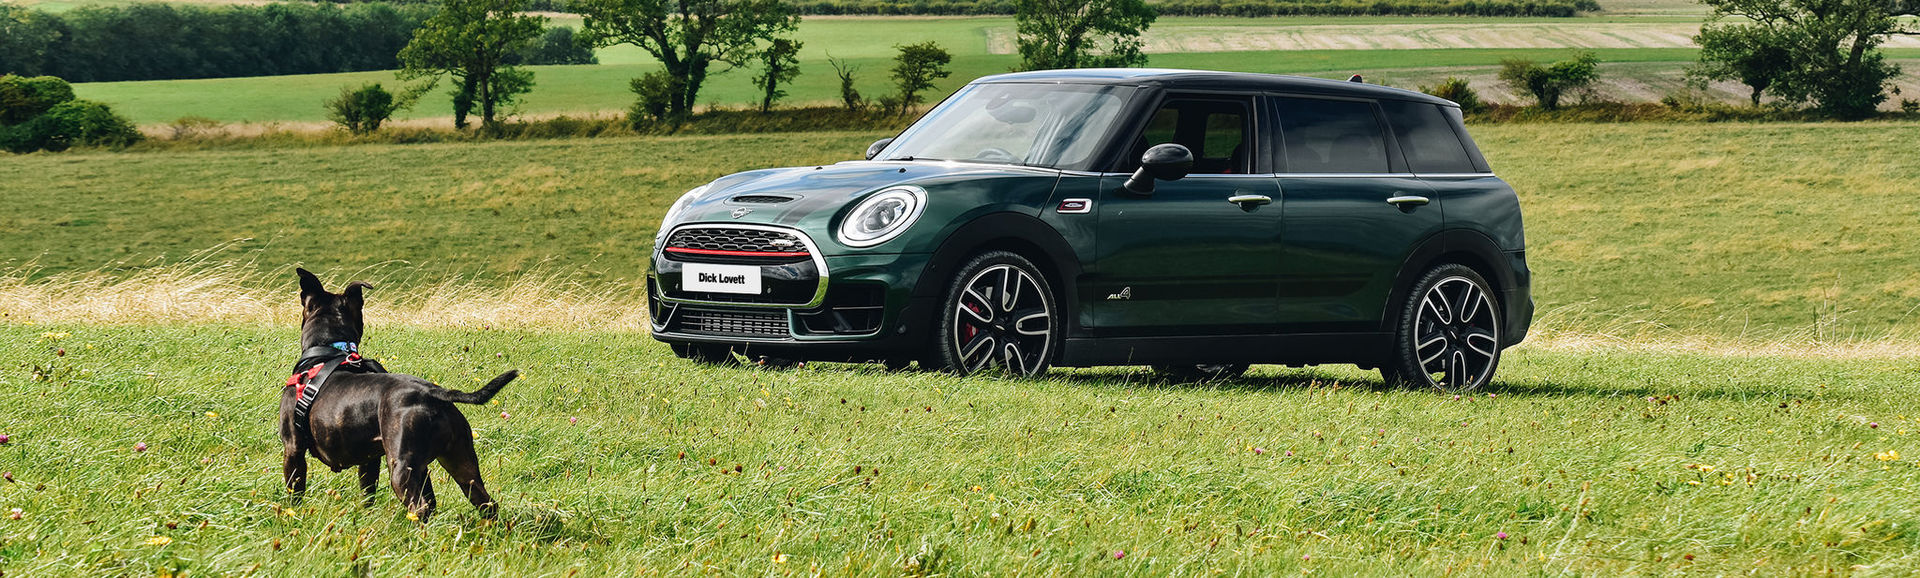 Official Mini Dealership New And Approved Used Dick Lovett Mini